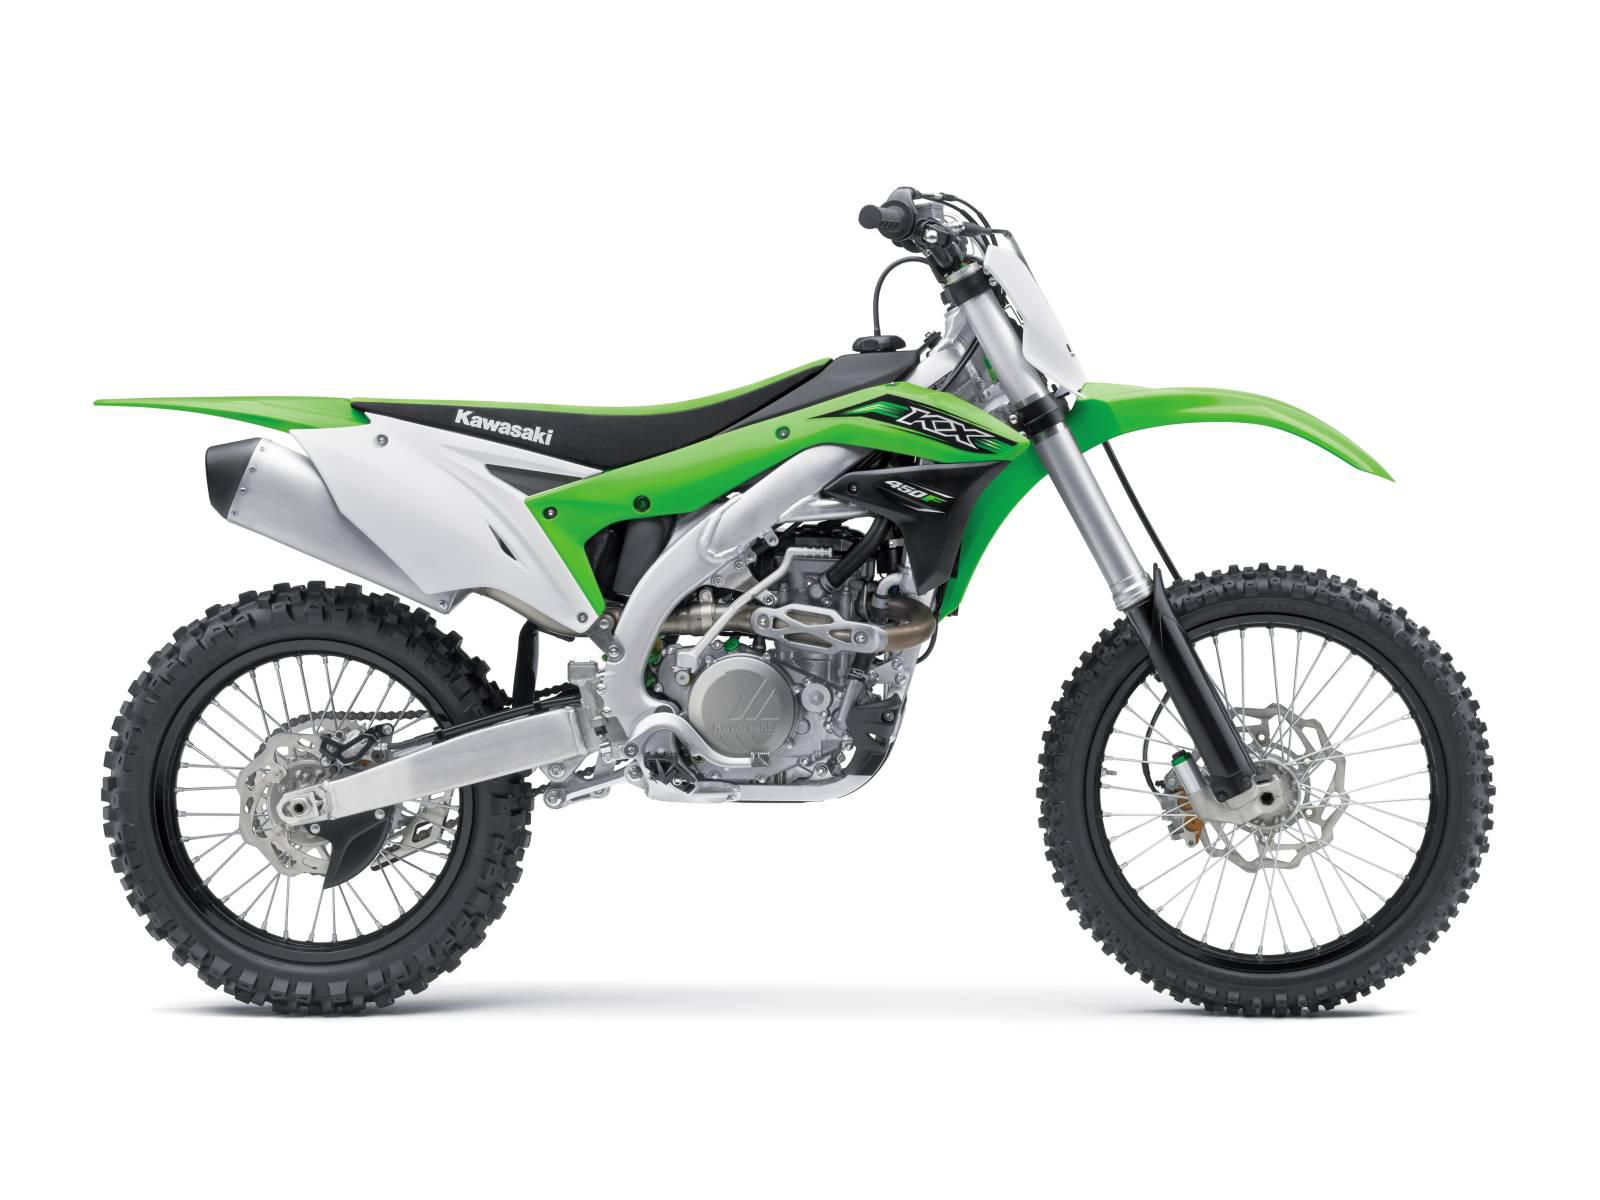 kawasaki kx450f 2016 motorrad fotos motorrad bilder. Black Bedroom Furniture Sets. Home Design Ideas